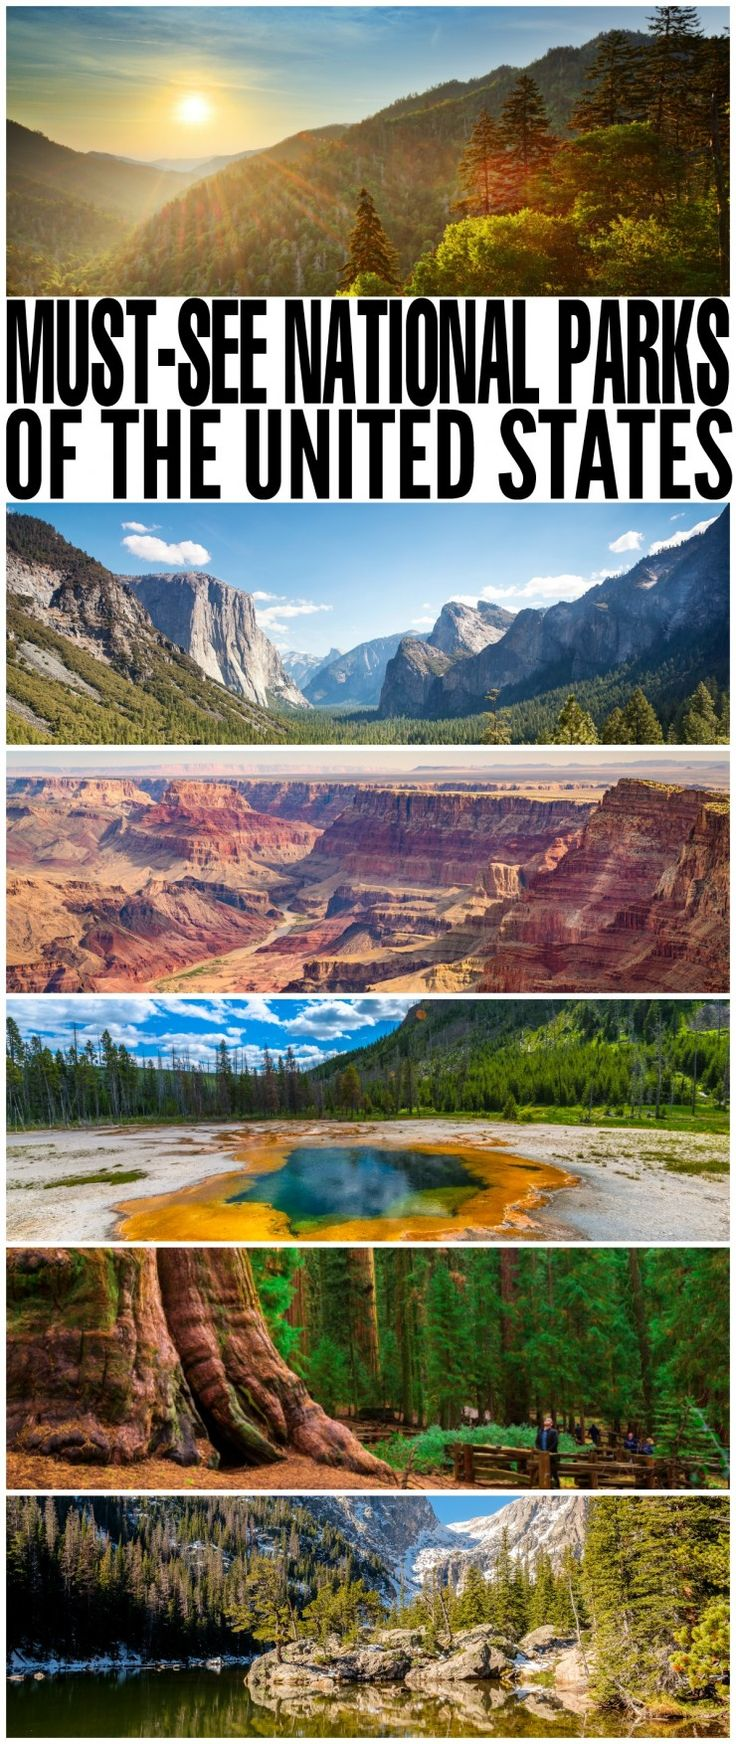 Must-See National Parks of the United States